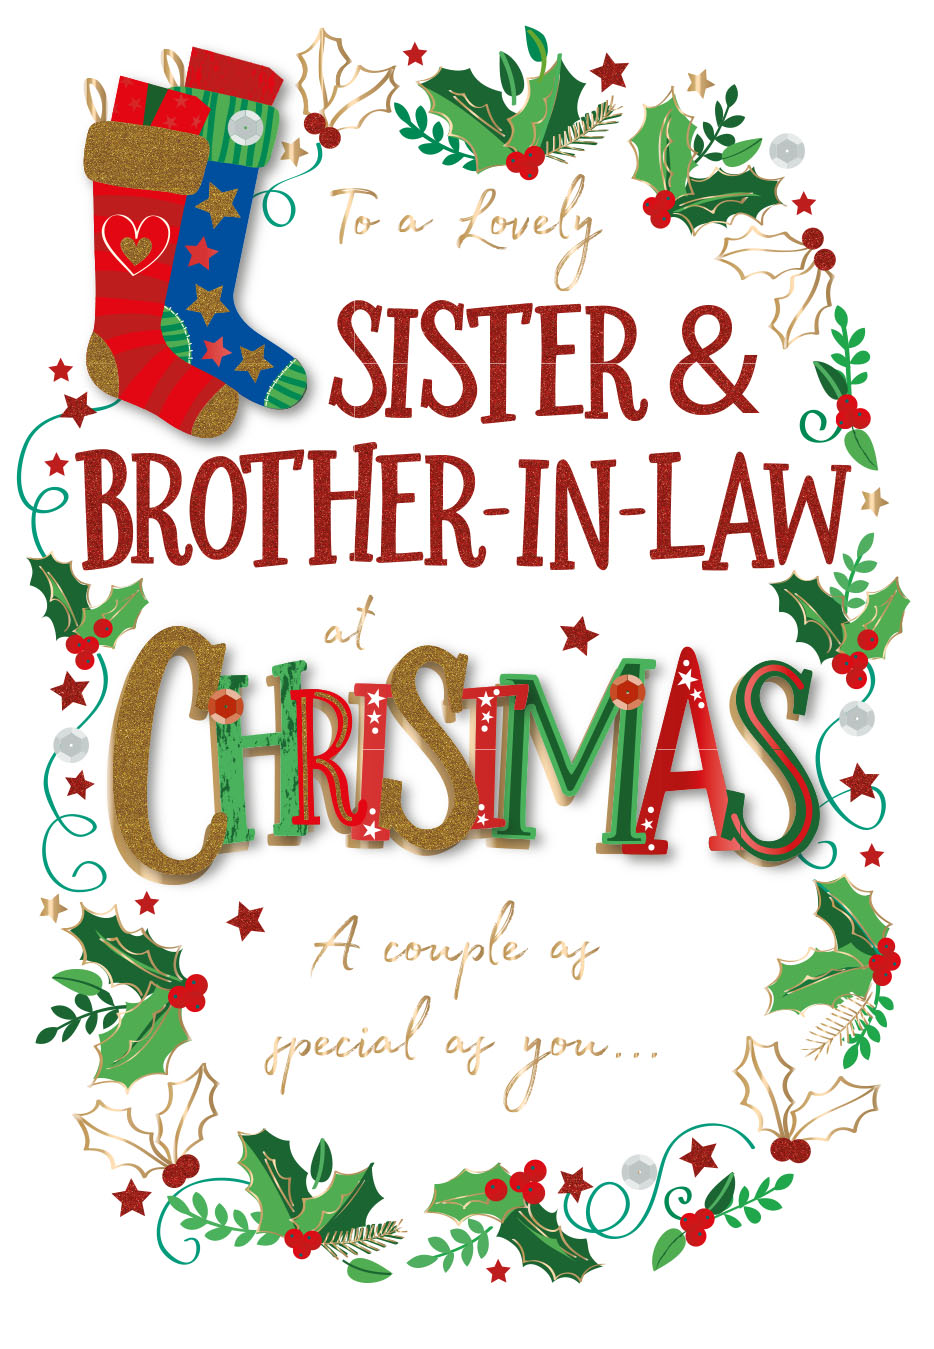 Merry Christmas Sister.Sister Brother In Law Embellished Christmas Greeting Card